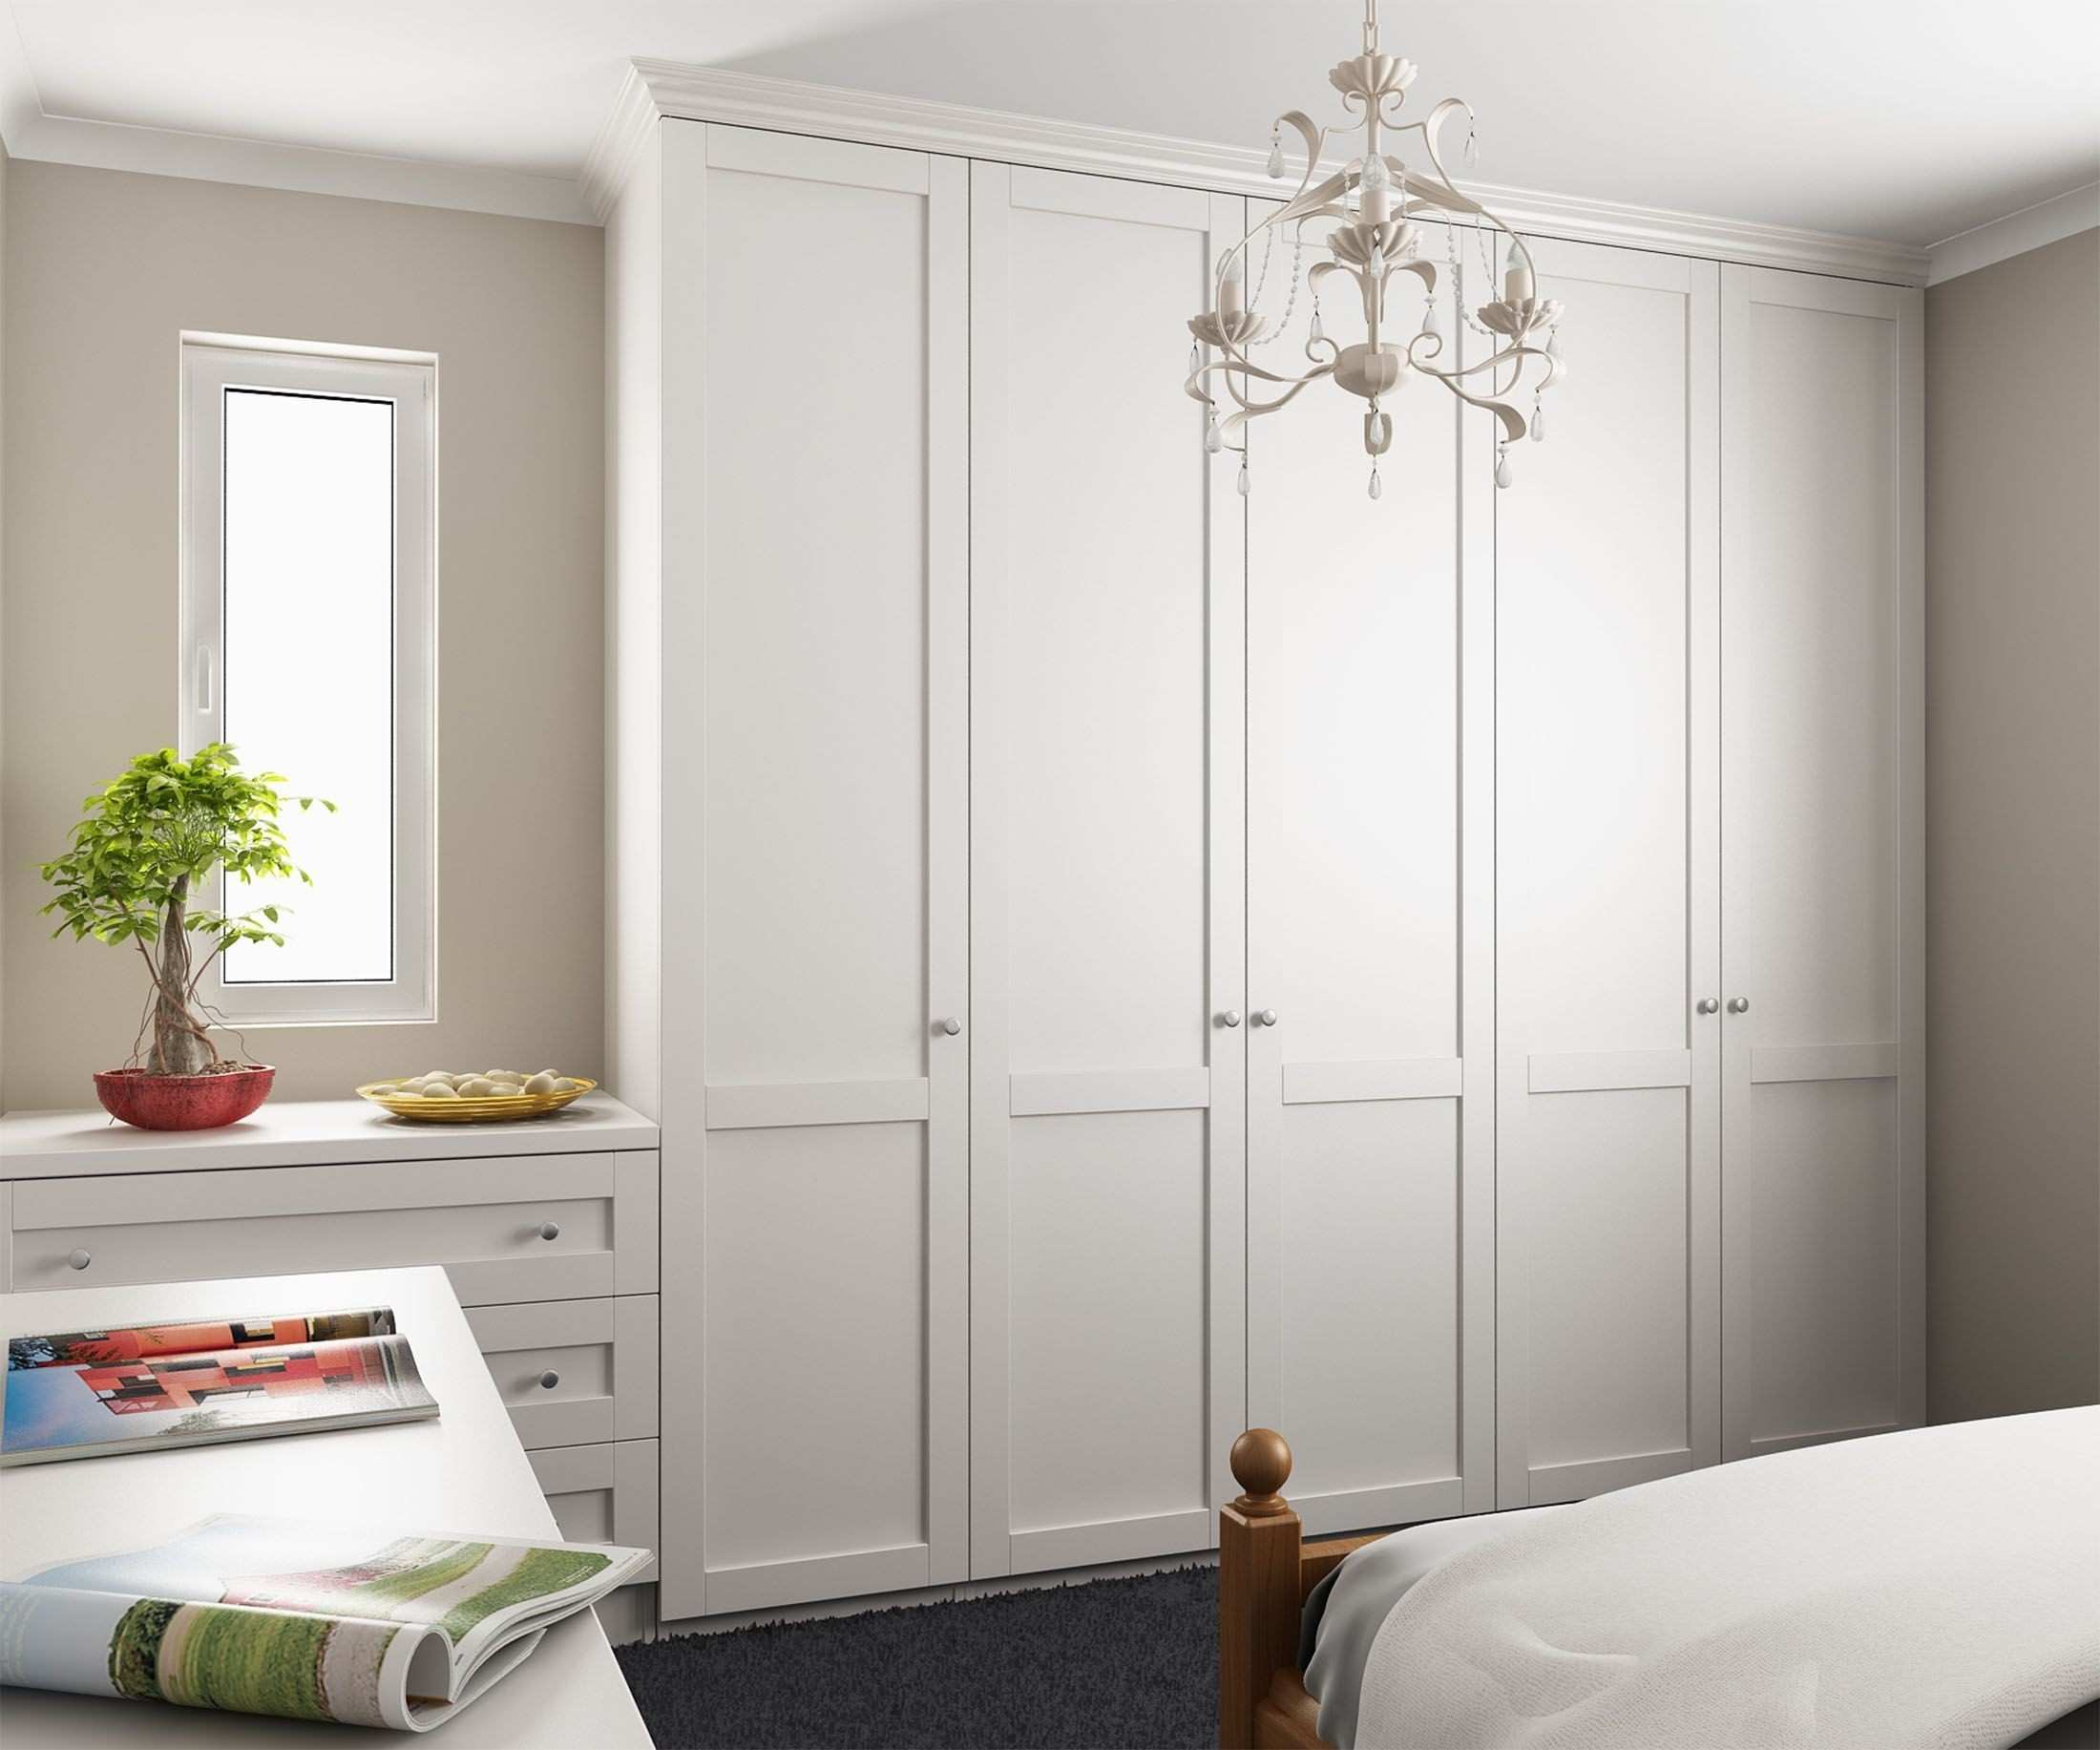 Top Wall To Wardrobes In Bedroom Also With Ideas Picture Gallery